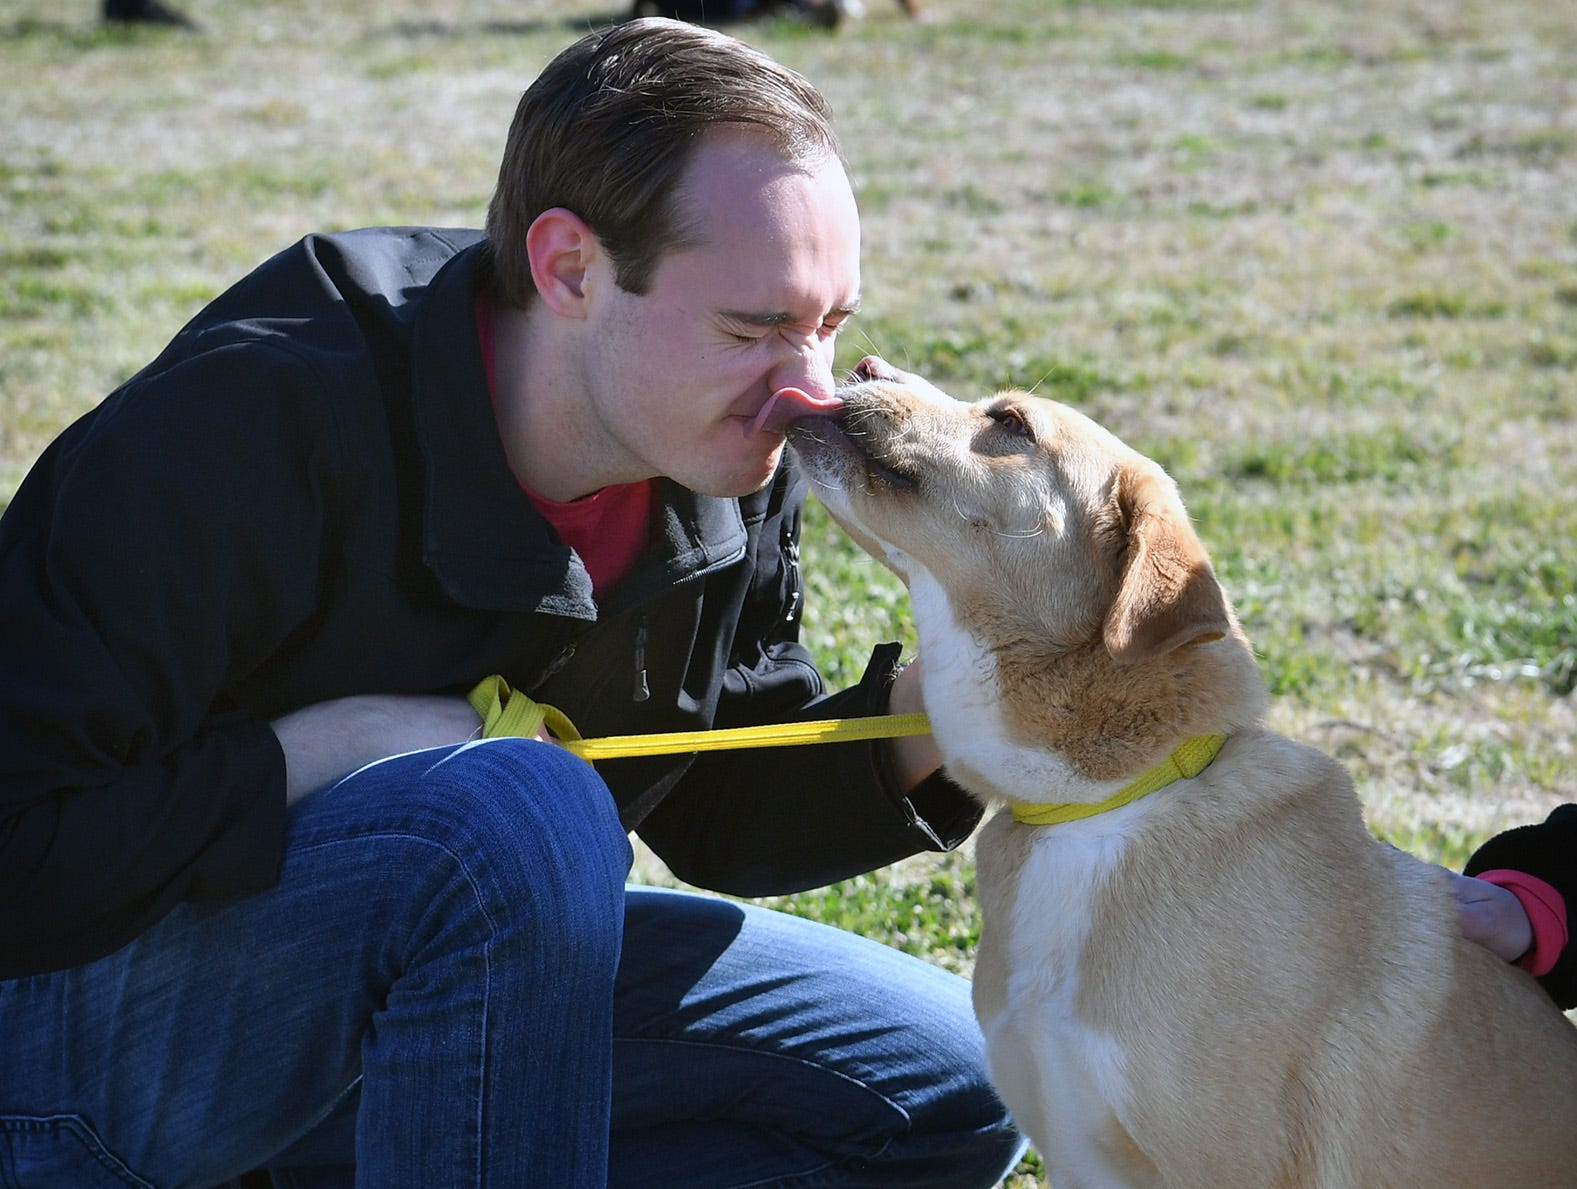 Mitchell Aiello, who plays Cap'n Turbot in Paw Patrol Live, gets kisses from a dog named Pandora while volunteering at the Humane Society of Wichita County Monday afternoon.